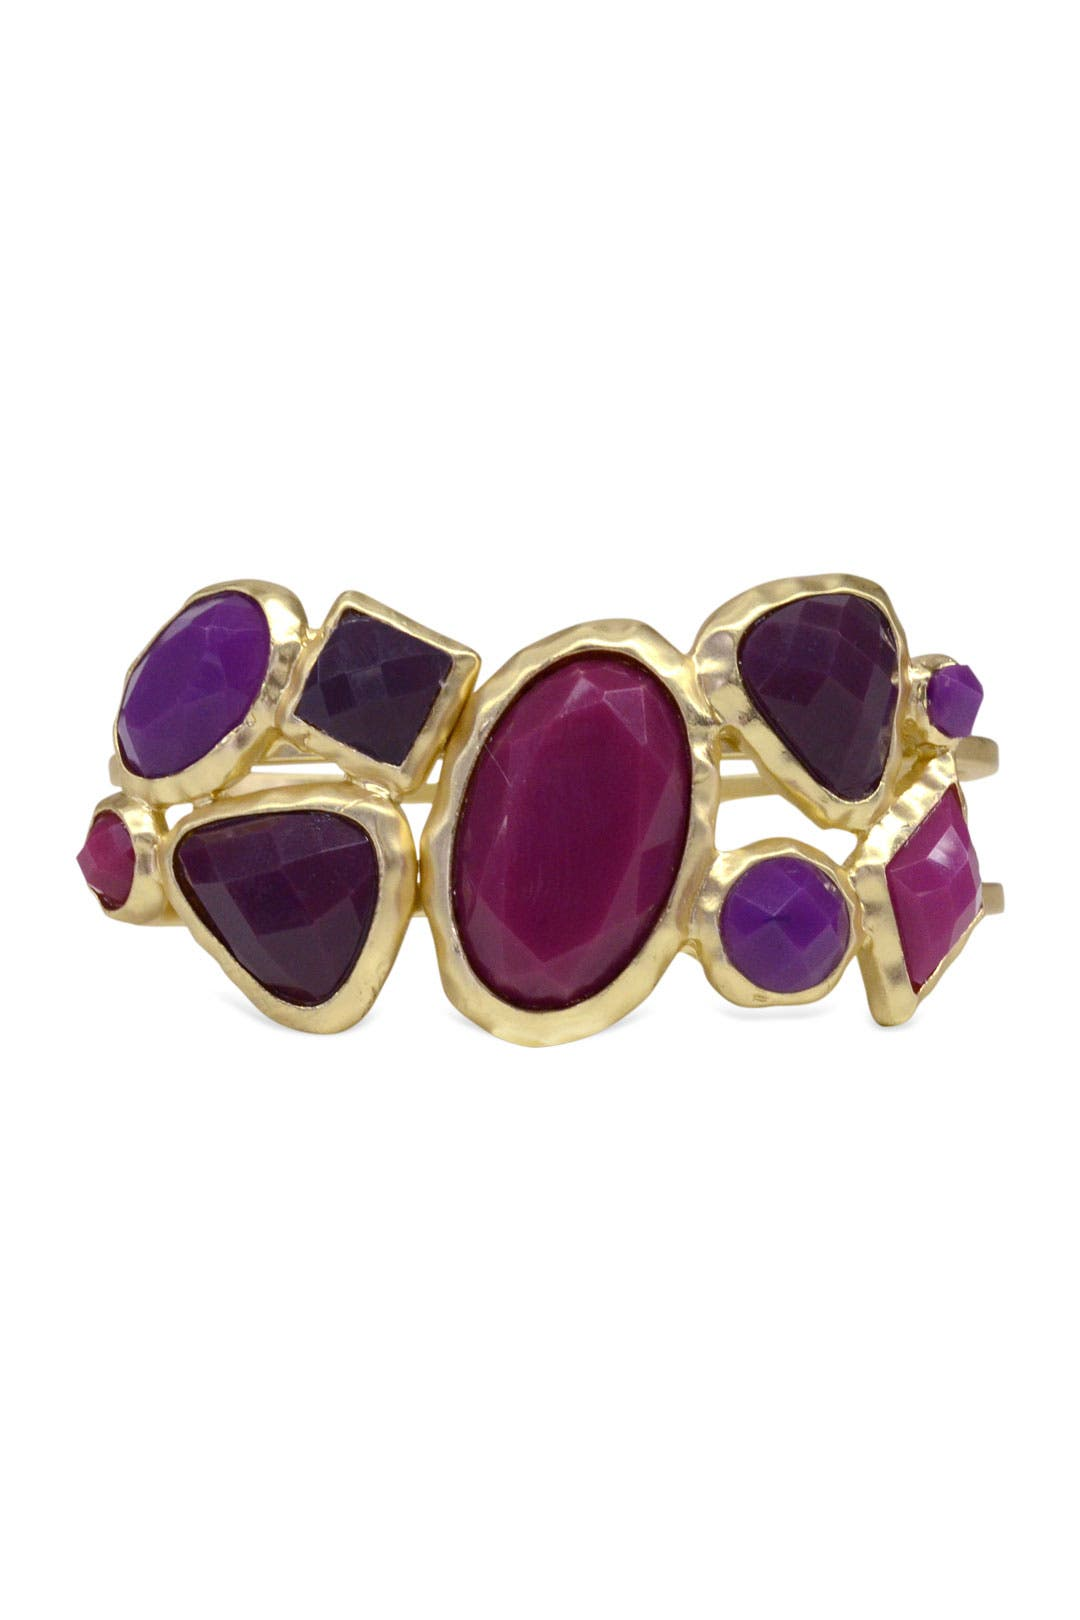 Berry Stone Bangle by Cinder & Charm